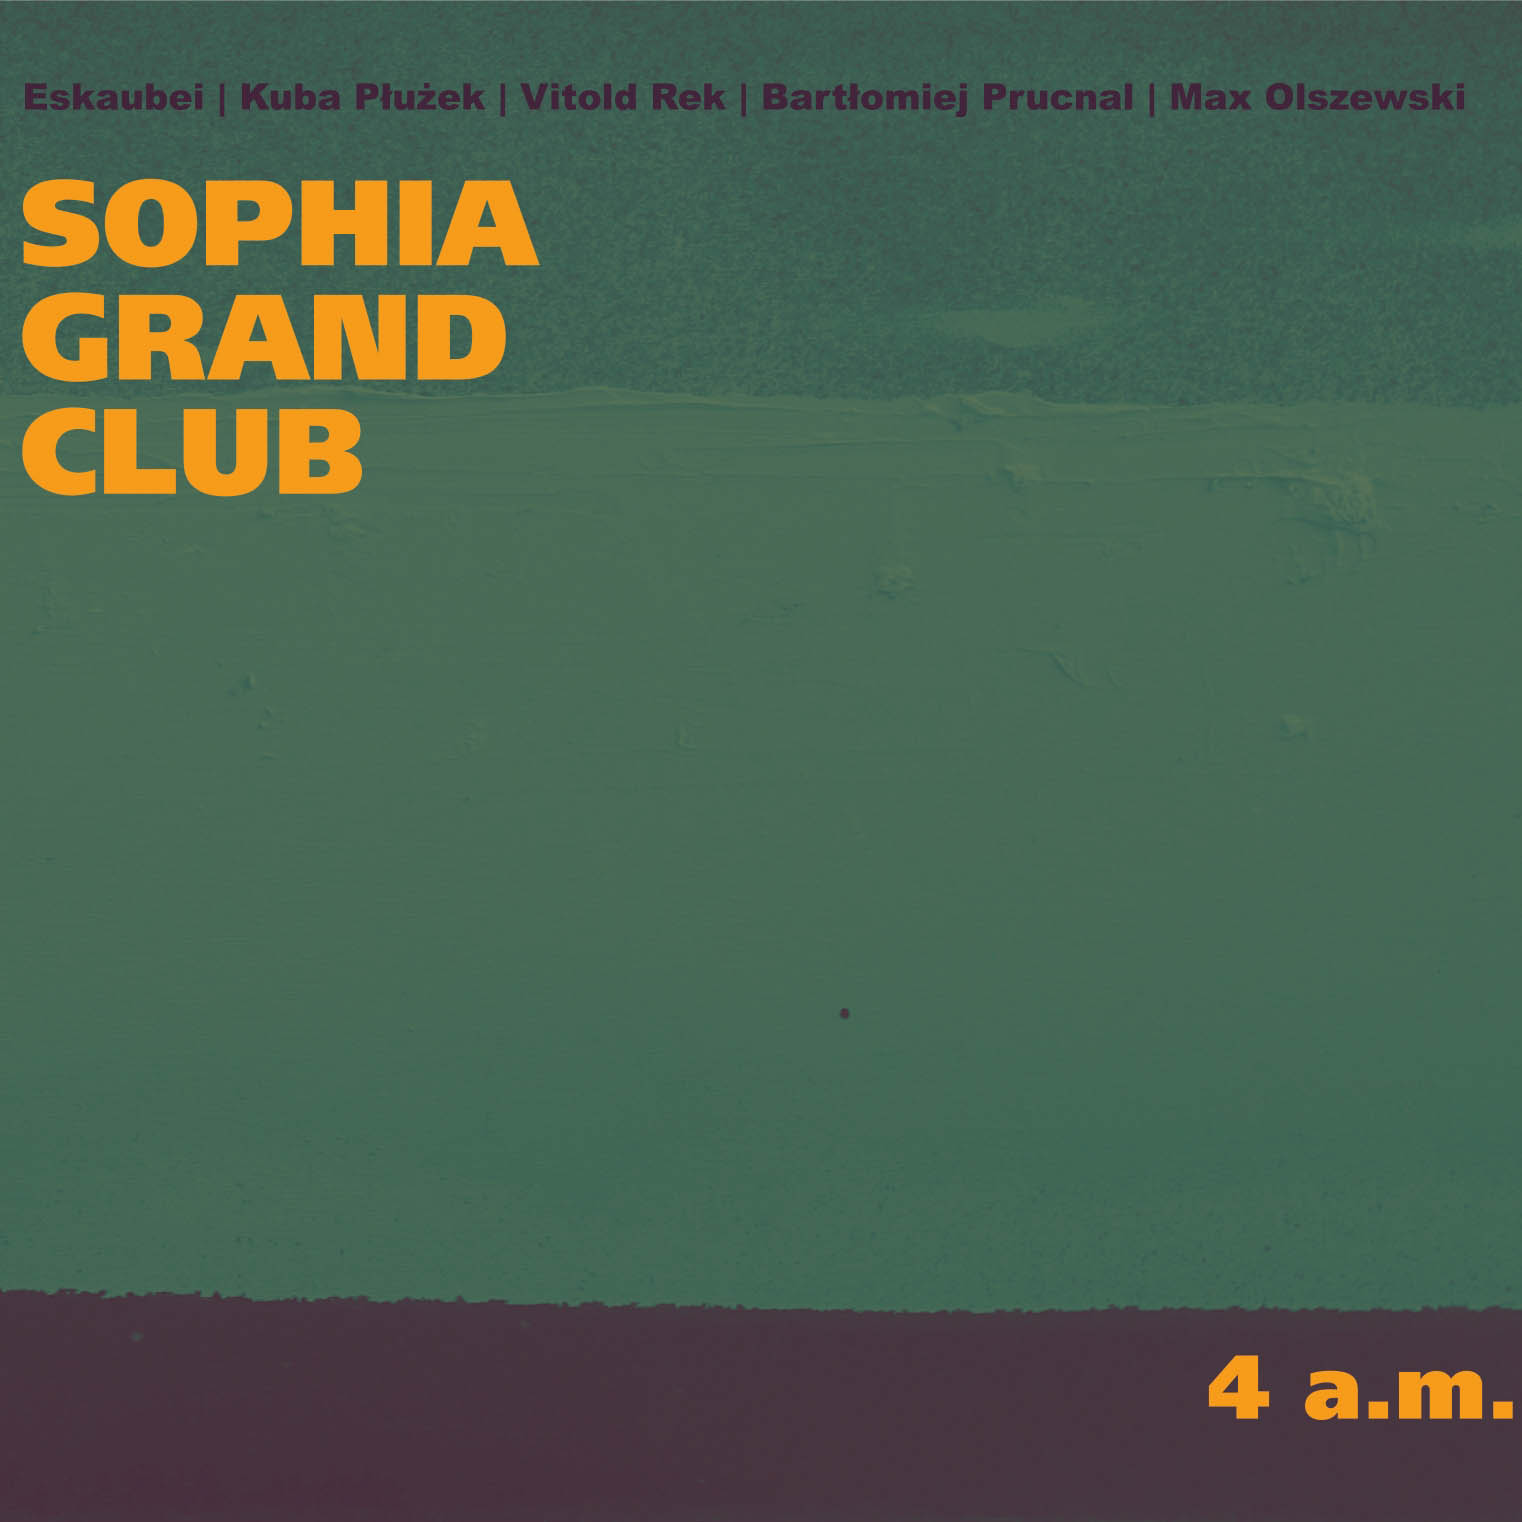 Sophia Grand Club 4 a.m. cover